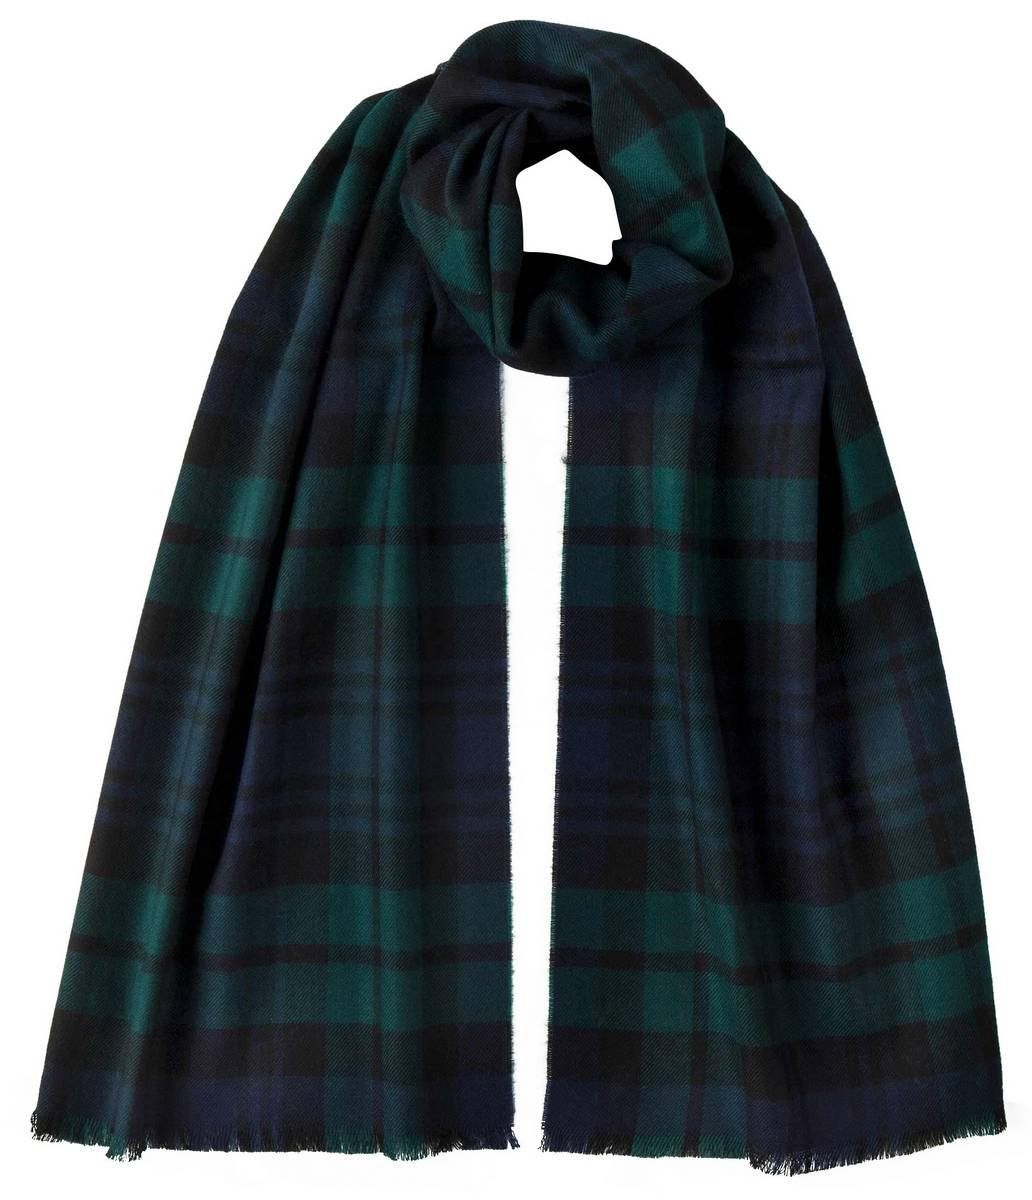 Johnstons of Elgin Unisex Black Watch Extra Fine Tartan Scarf - Navy/Black/Green